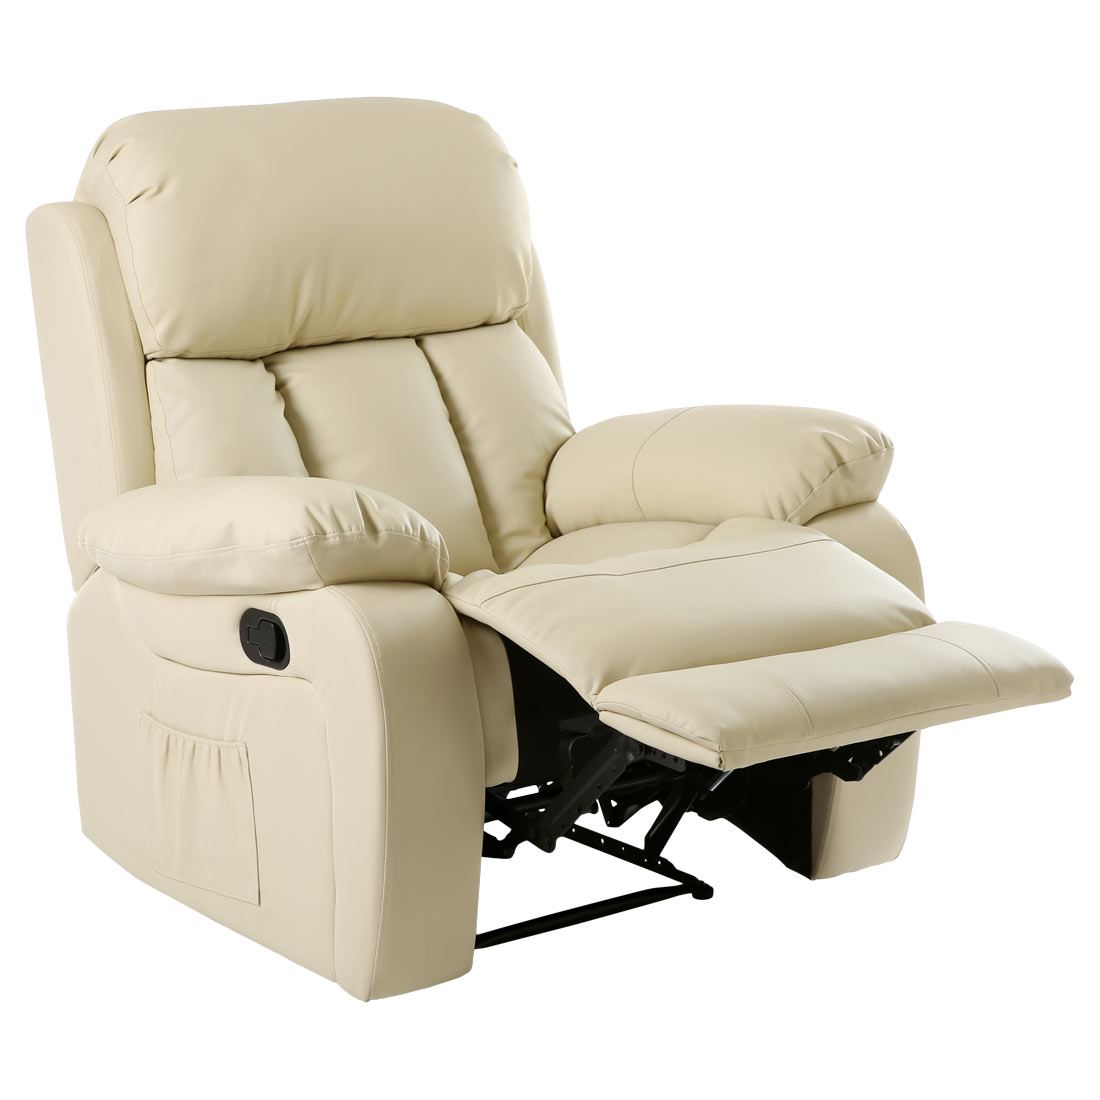 Heated Armchair 28 Images Massage Sofa Chair Recline Rocking Armchair Lounge Heated Chester